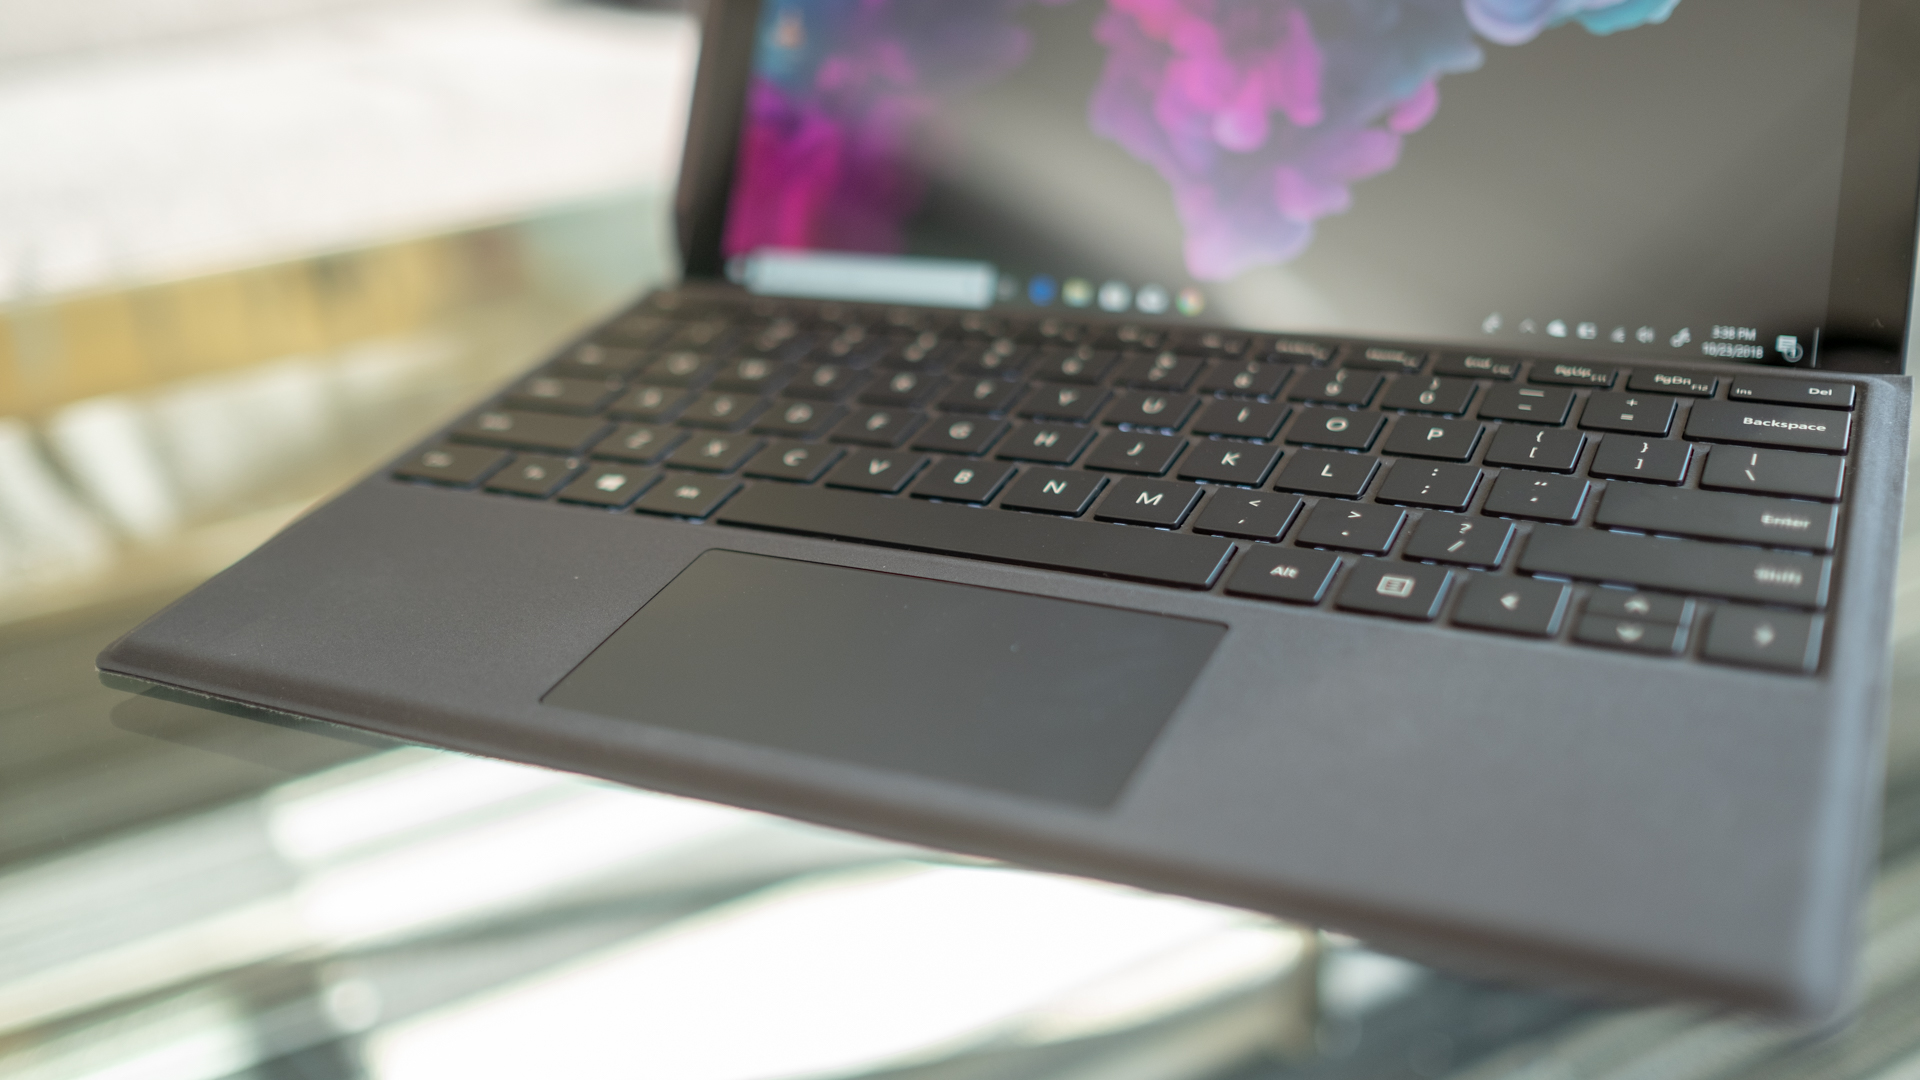 Surface Pro 6 has the exact same Type Cover.